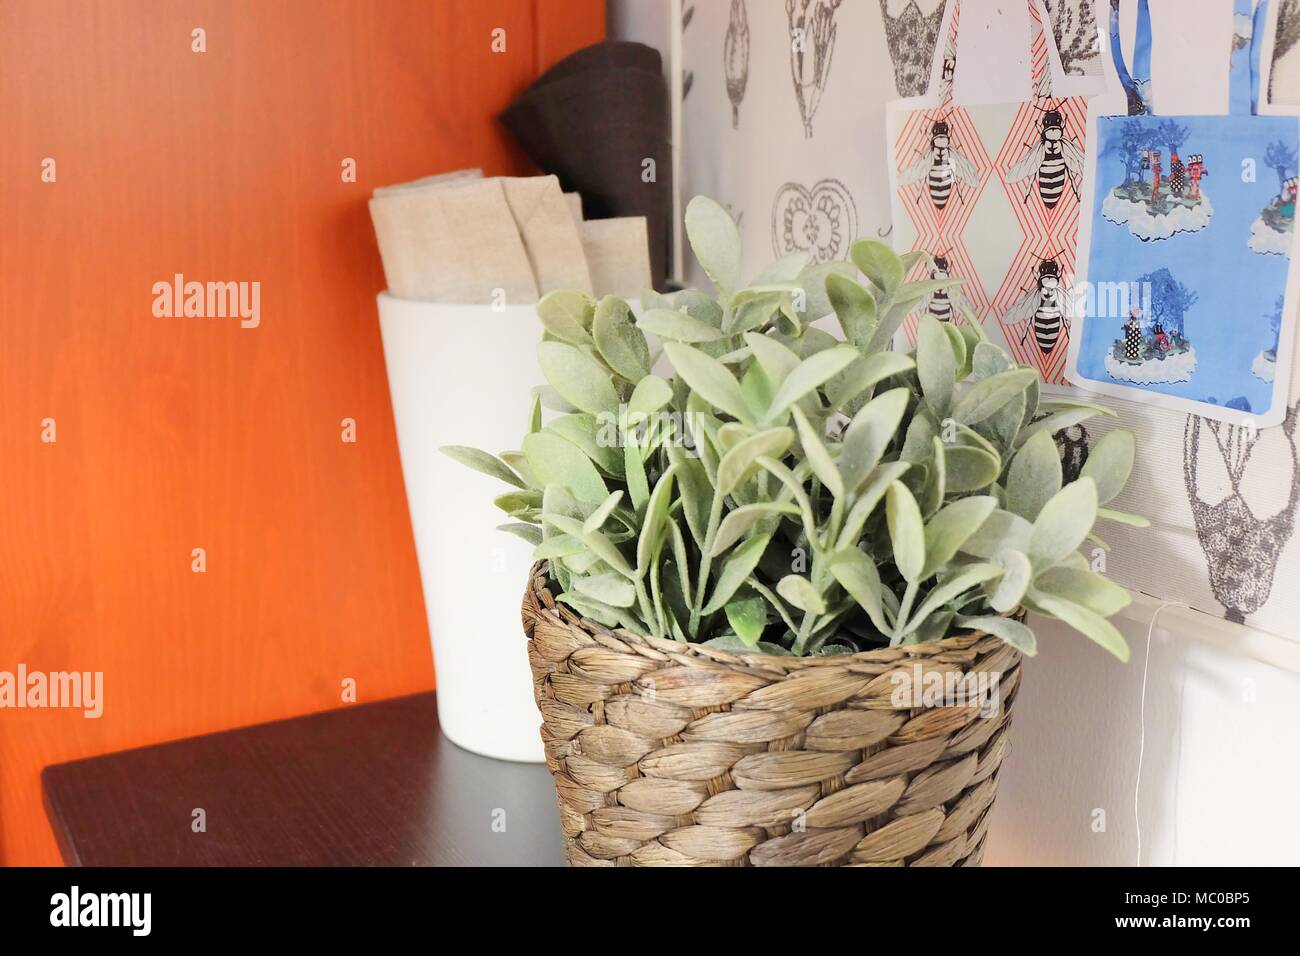 Sewing and Crafting Room with Fabric Rolls, Craft Board and Artificial Green Plant. - Stock Image